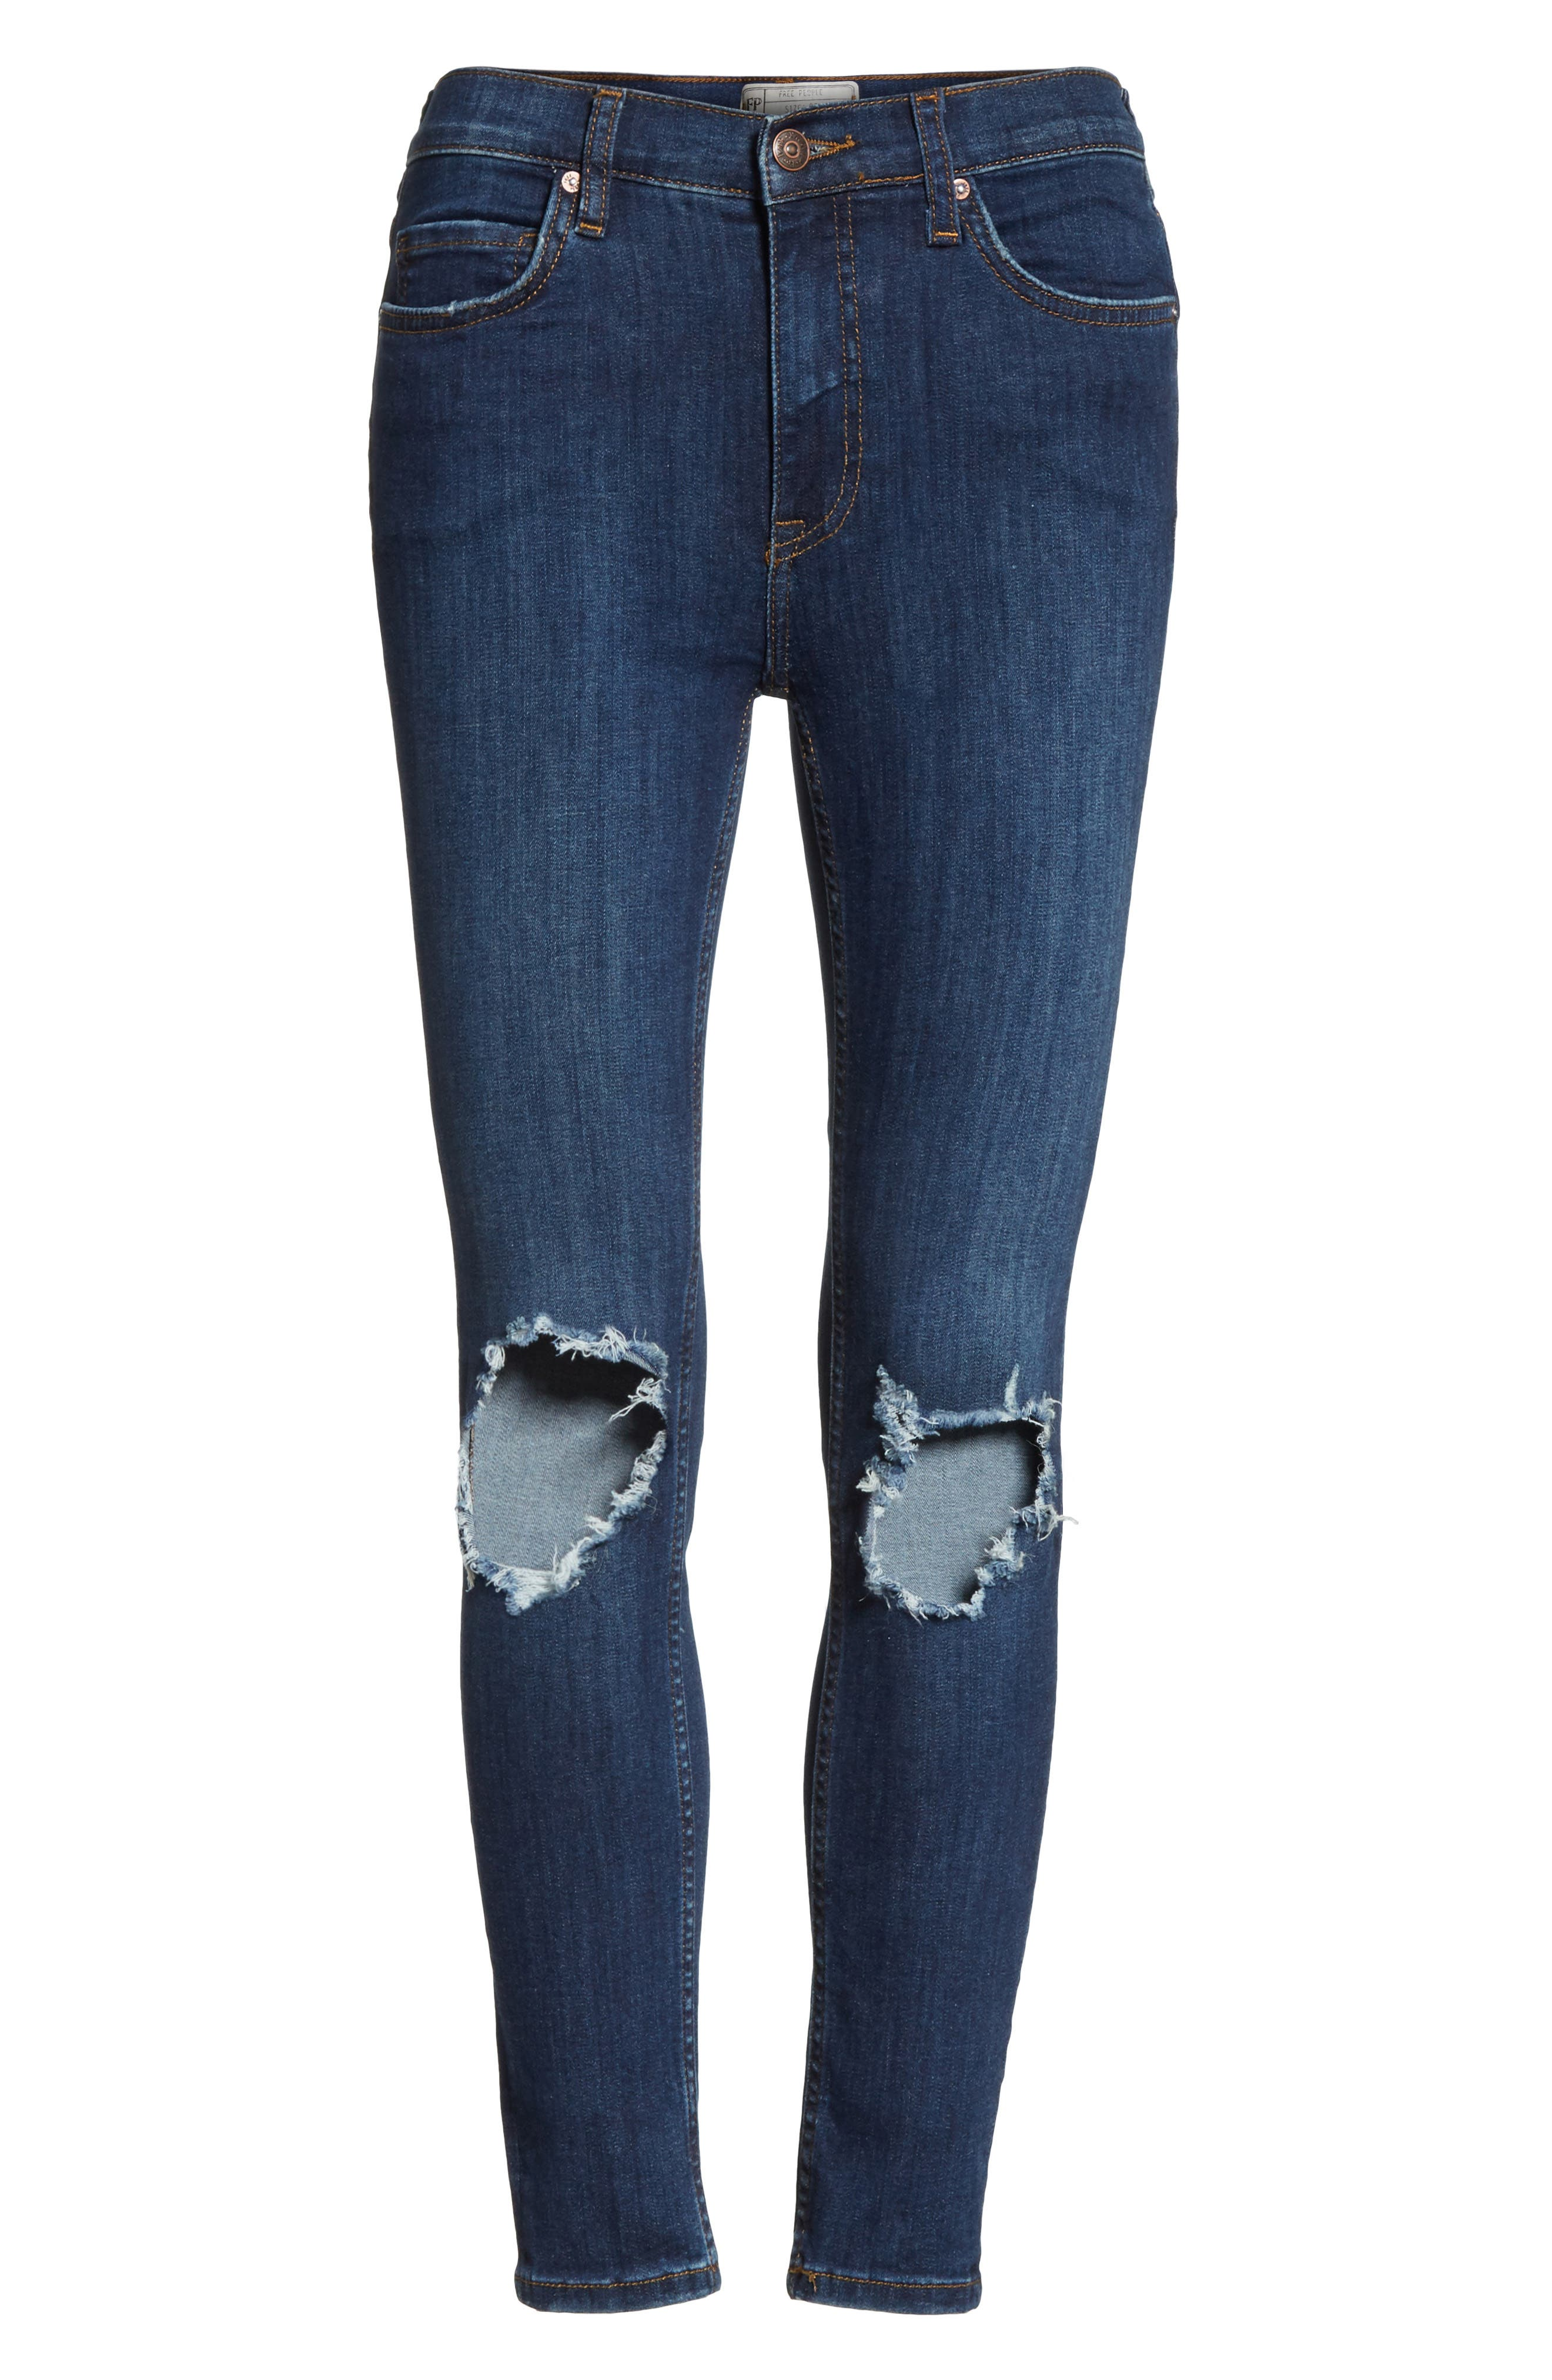 FREE PEOPLE, We the Free by Free People High Waist Ankle Skinny Jeans, Alternate thumbnail 7, color, DARK BLUE